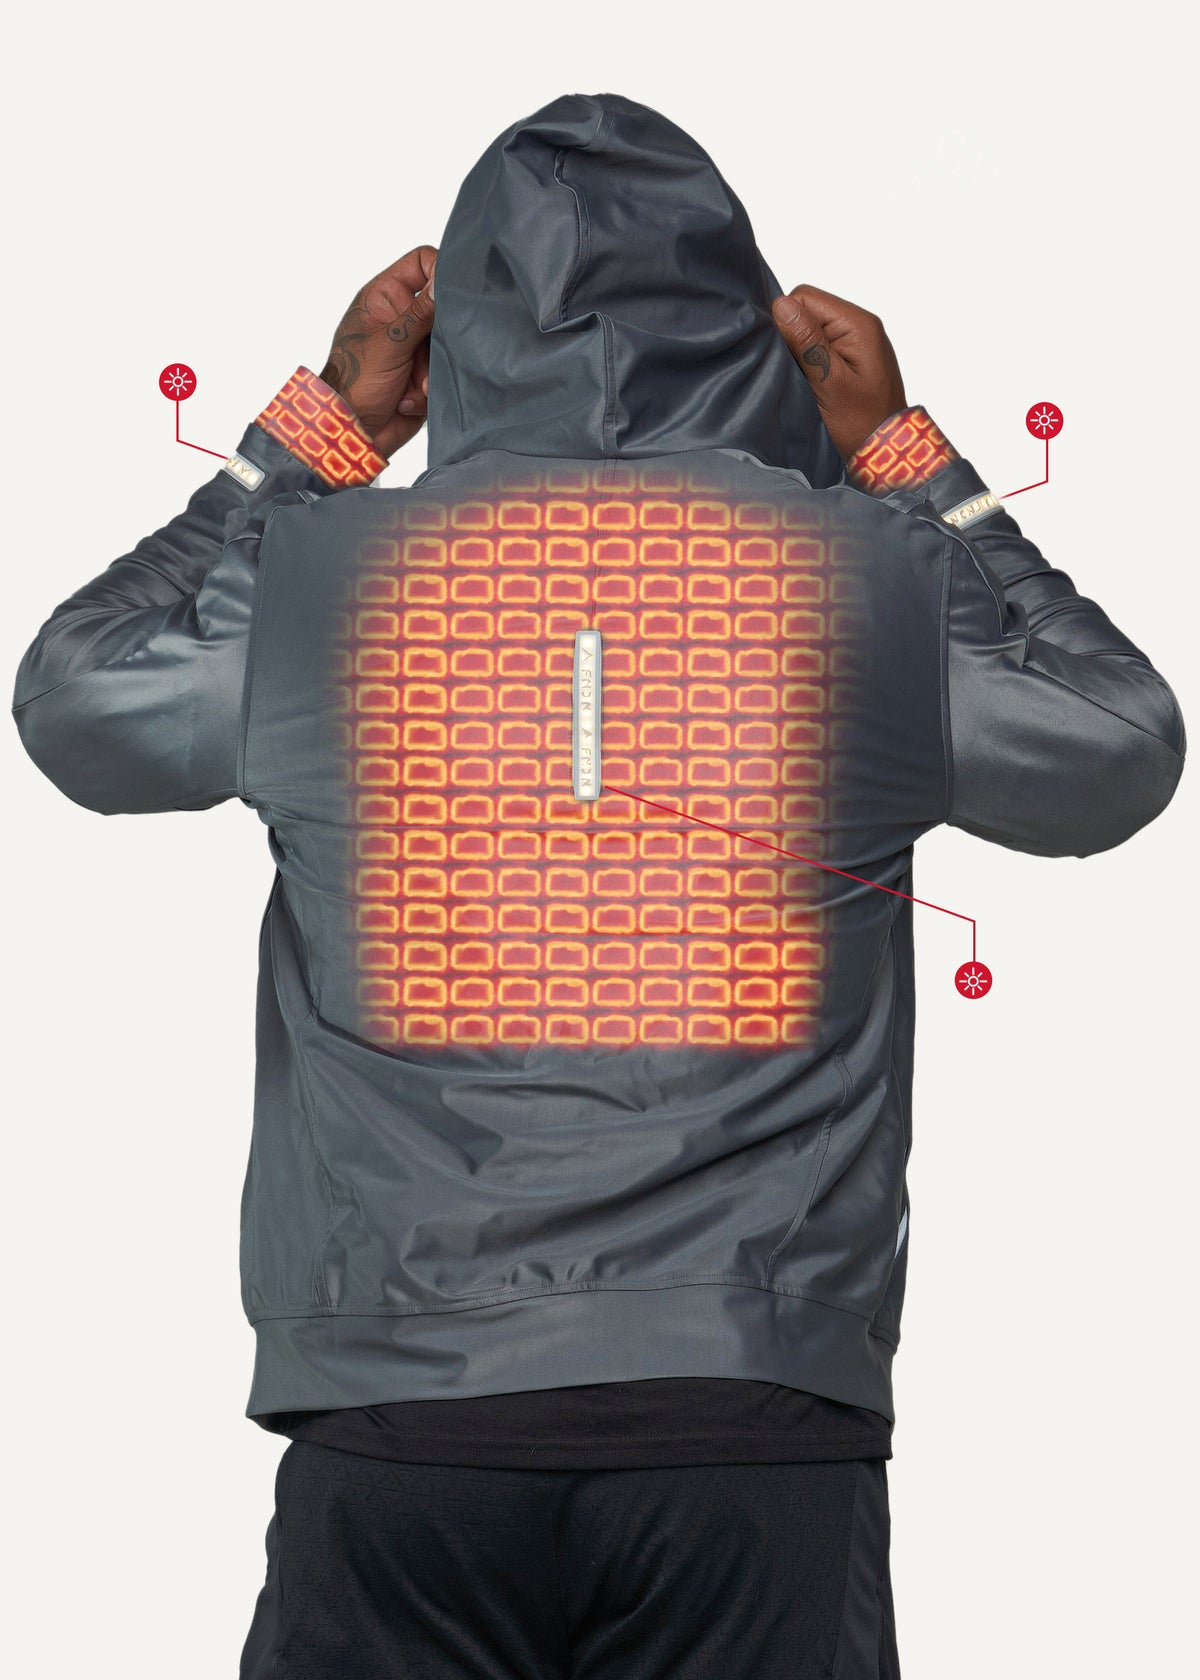 FNDN Heated LED Athletic Jacket w/ Built-In Heated Gloves